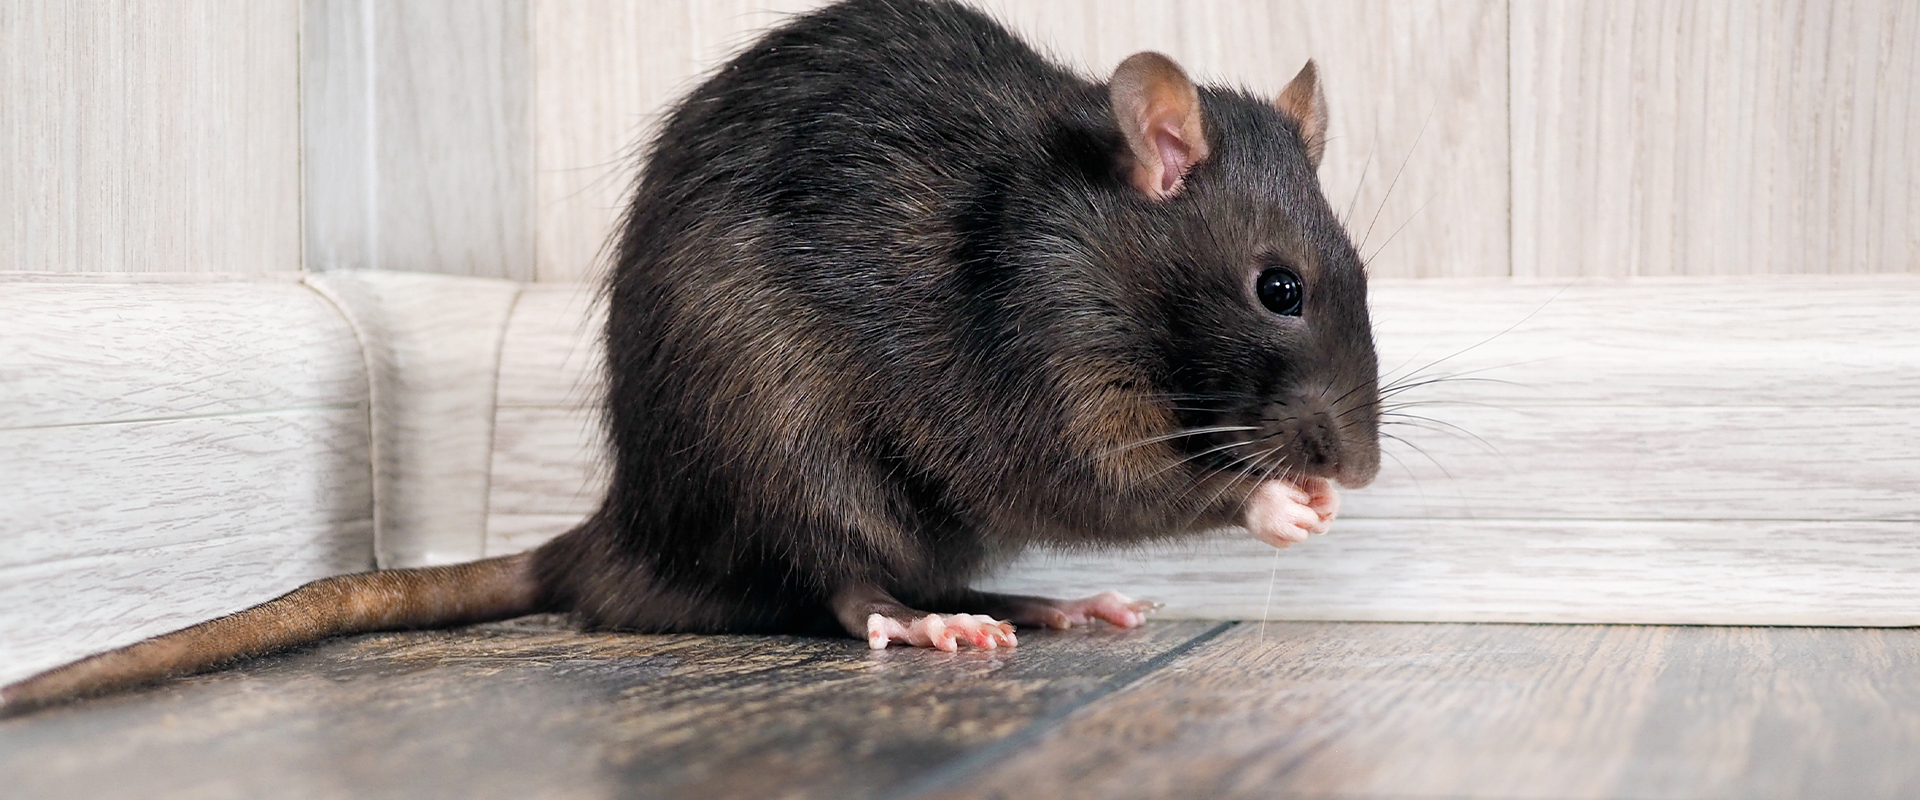 a black rat on the floor in a house